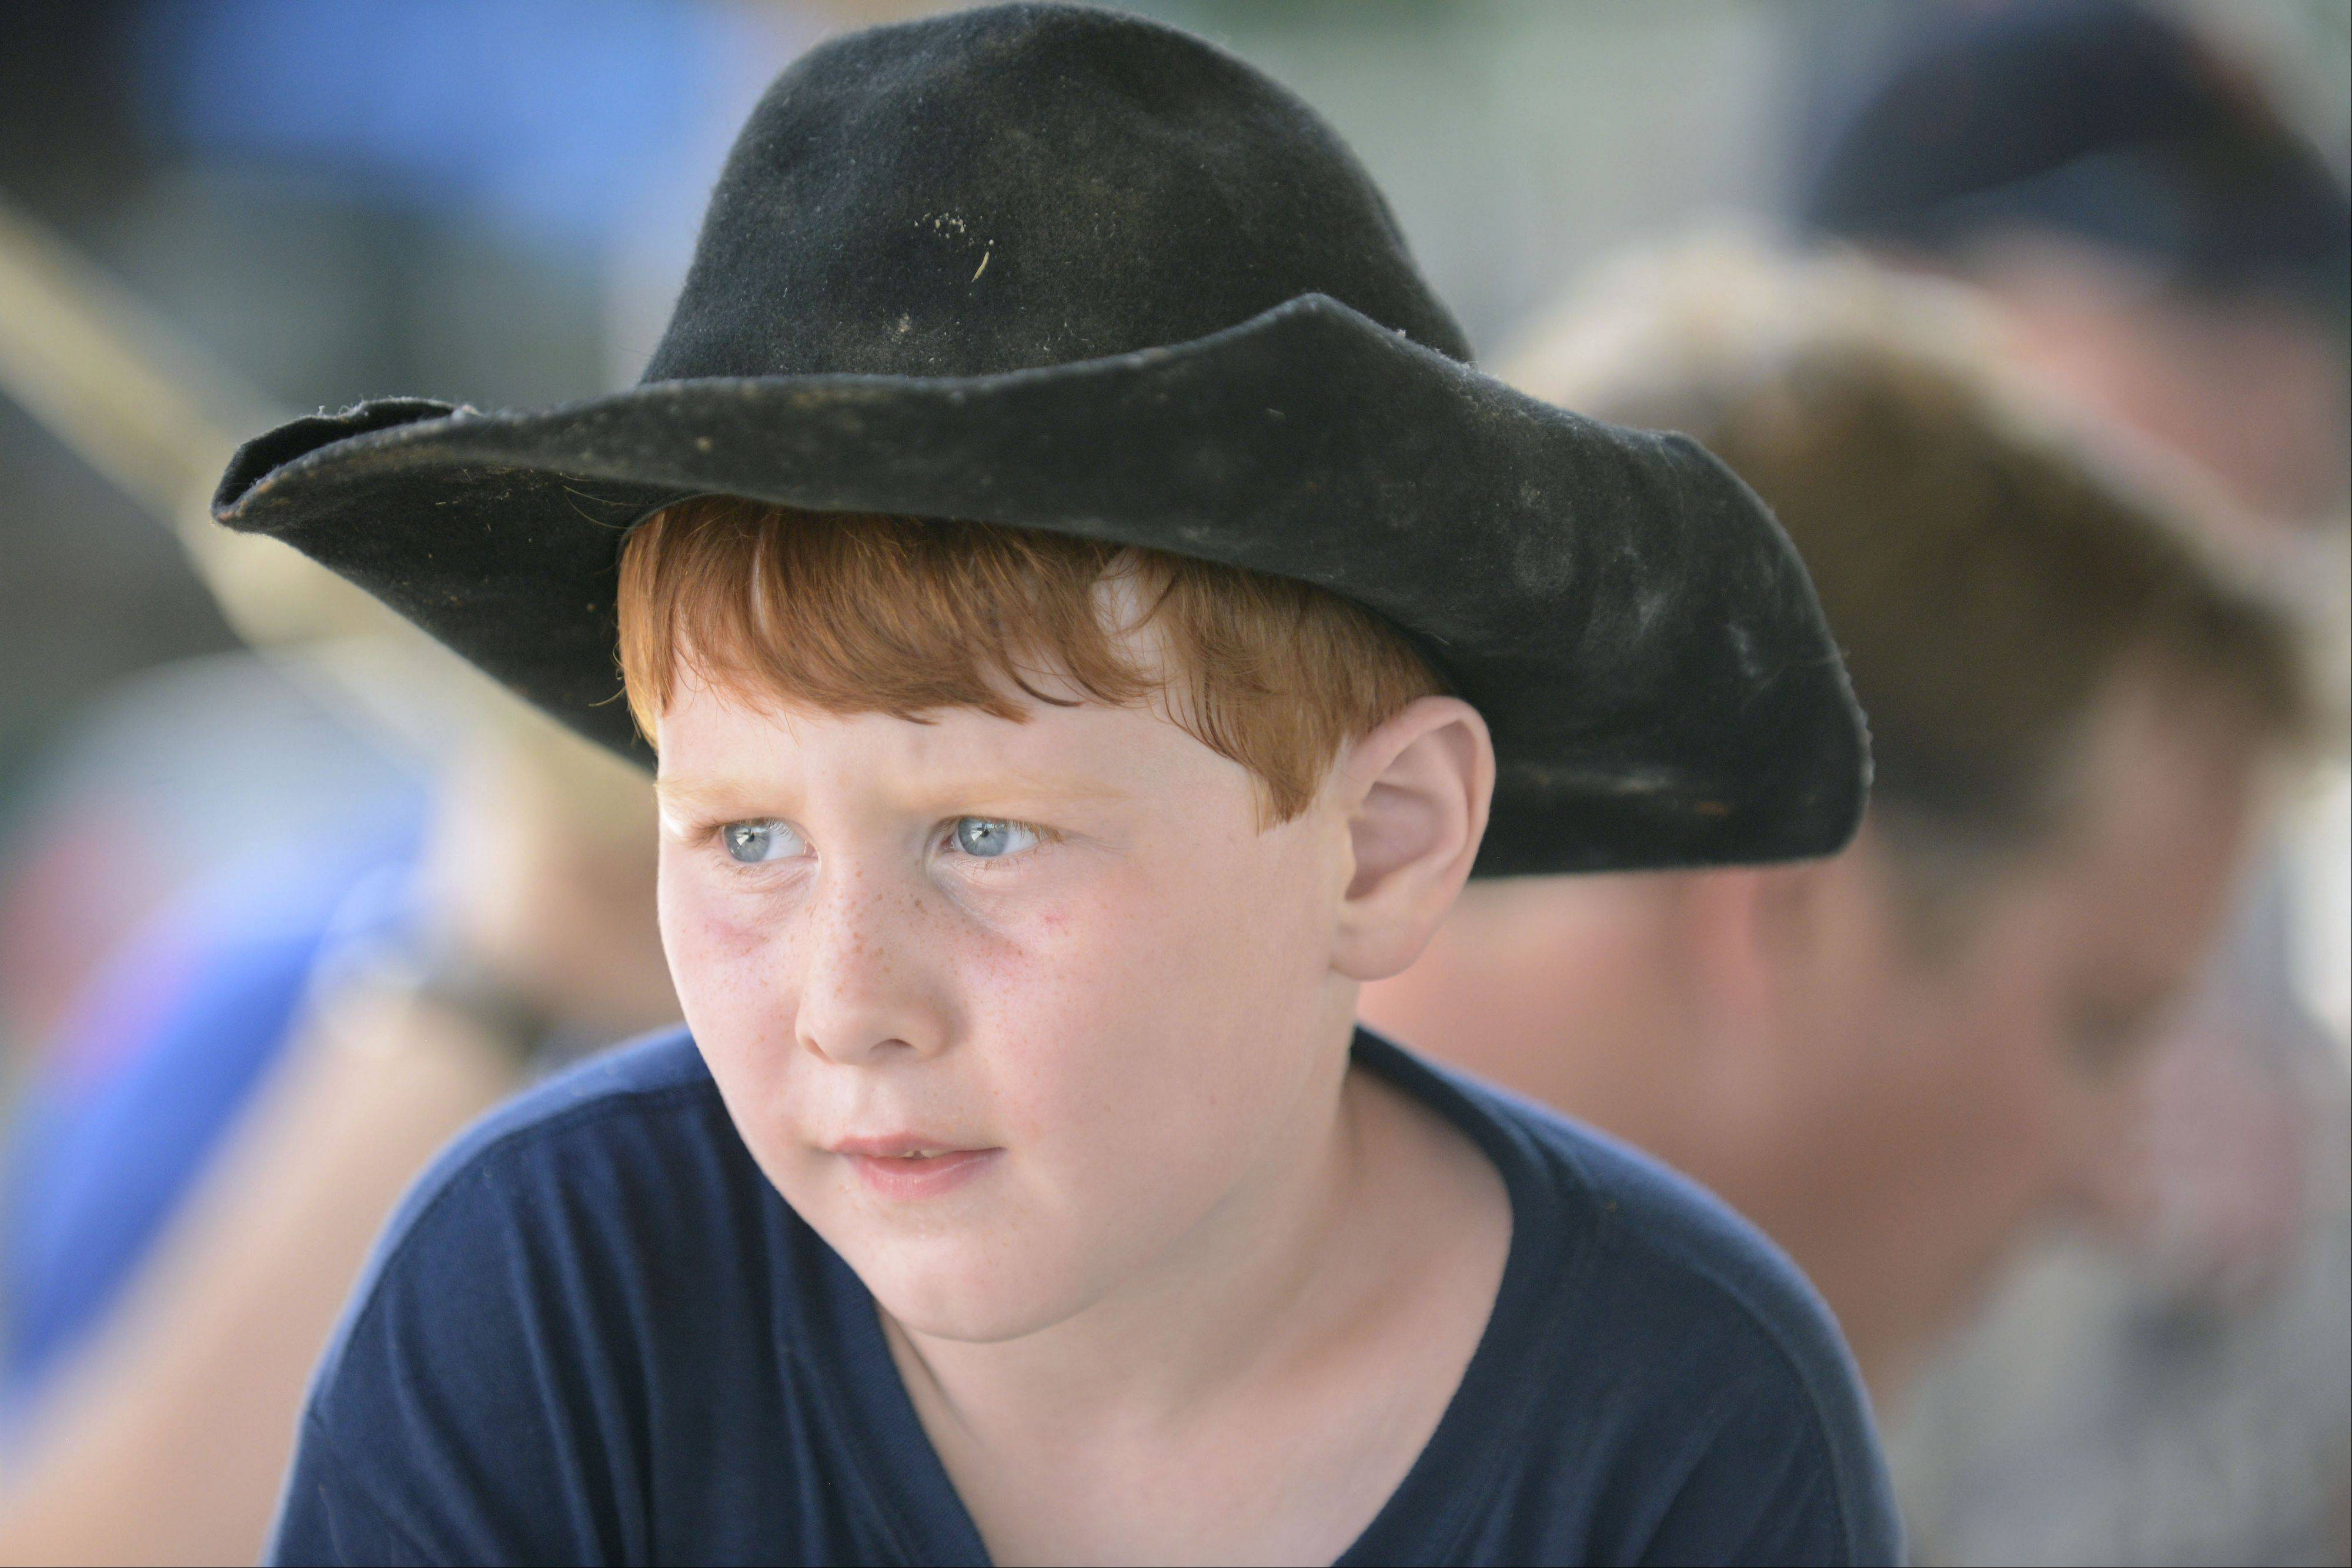 Caden Lenkaitis, 7, of Campton Hills watches dairy cattle judging Thursday. Caden�s family has been showing at the county fair for about 30 years through multiple generations.